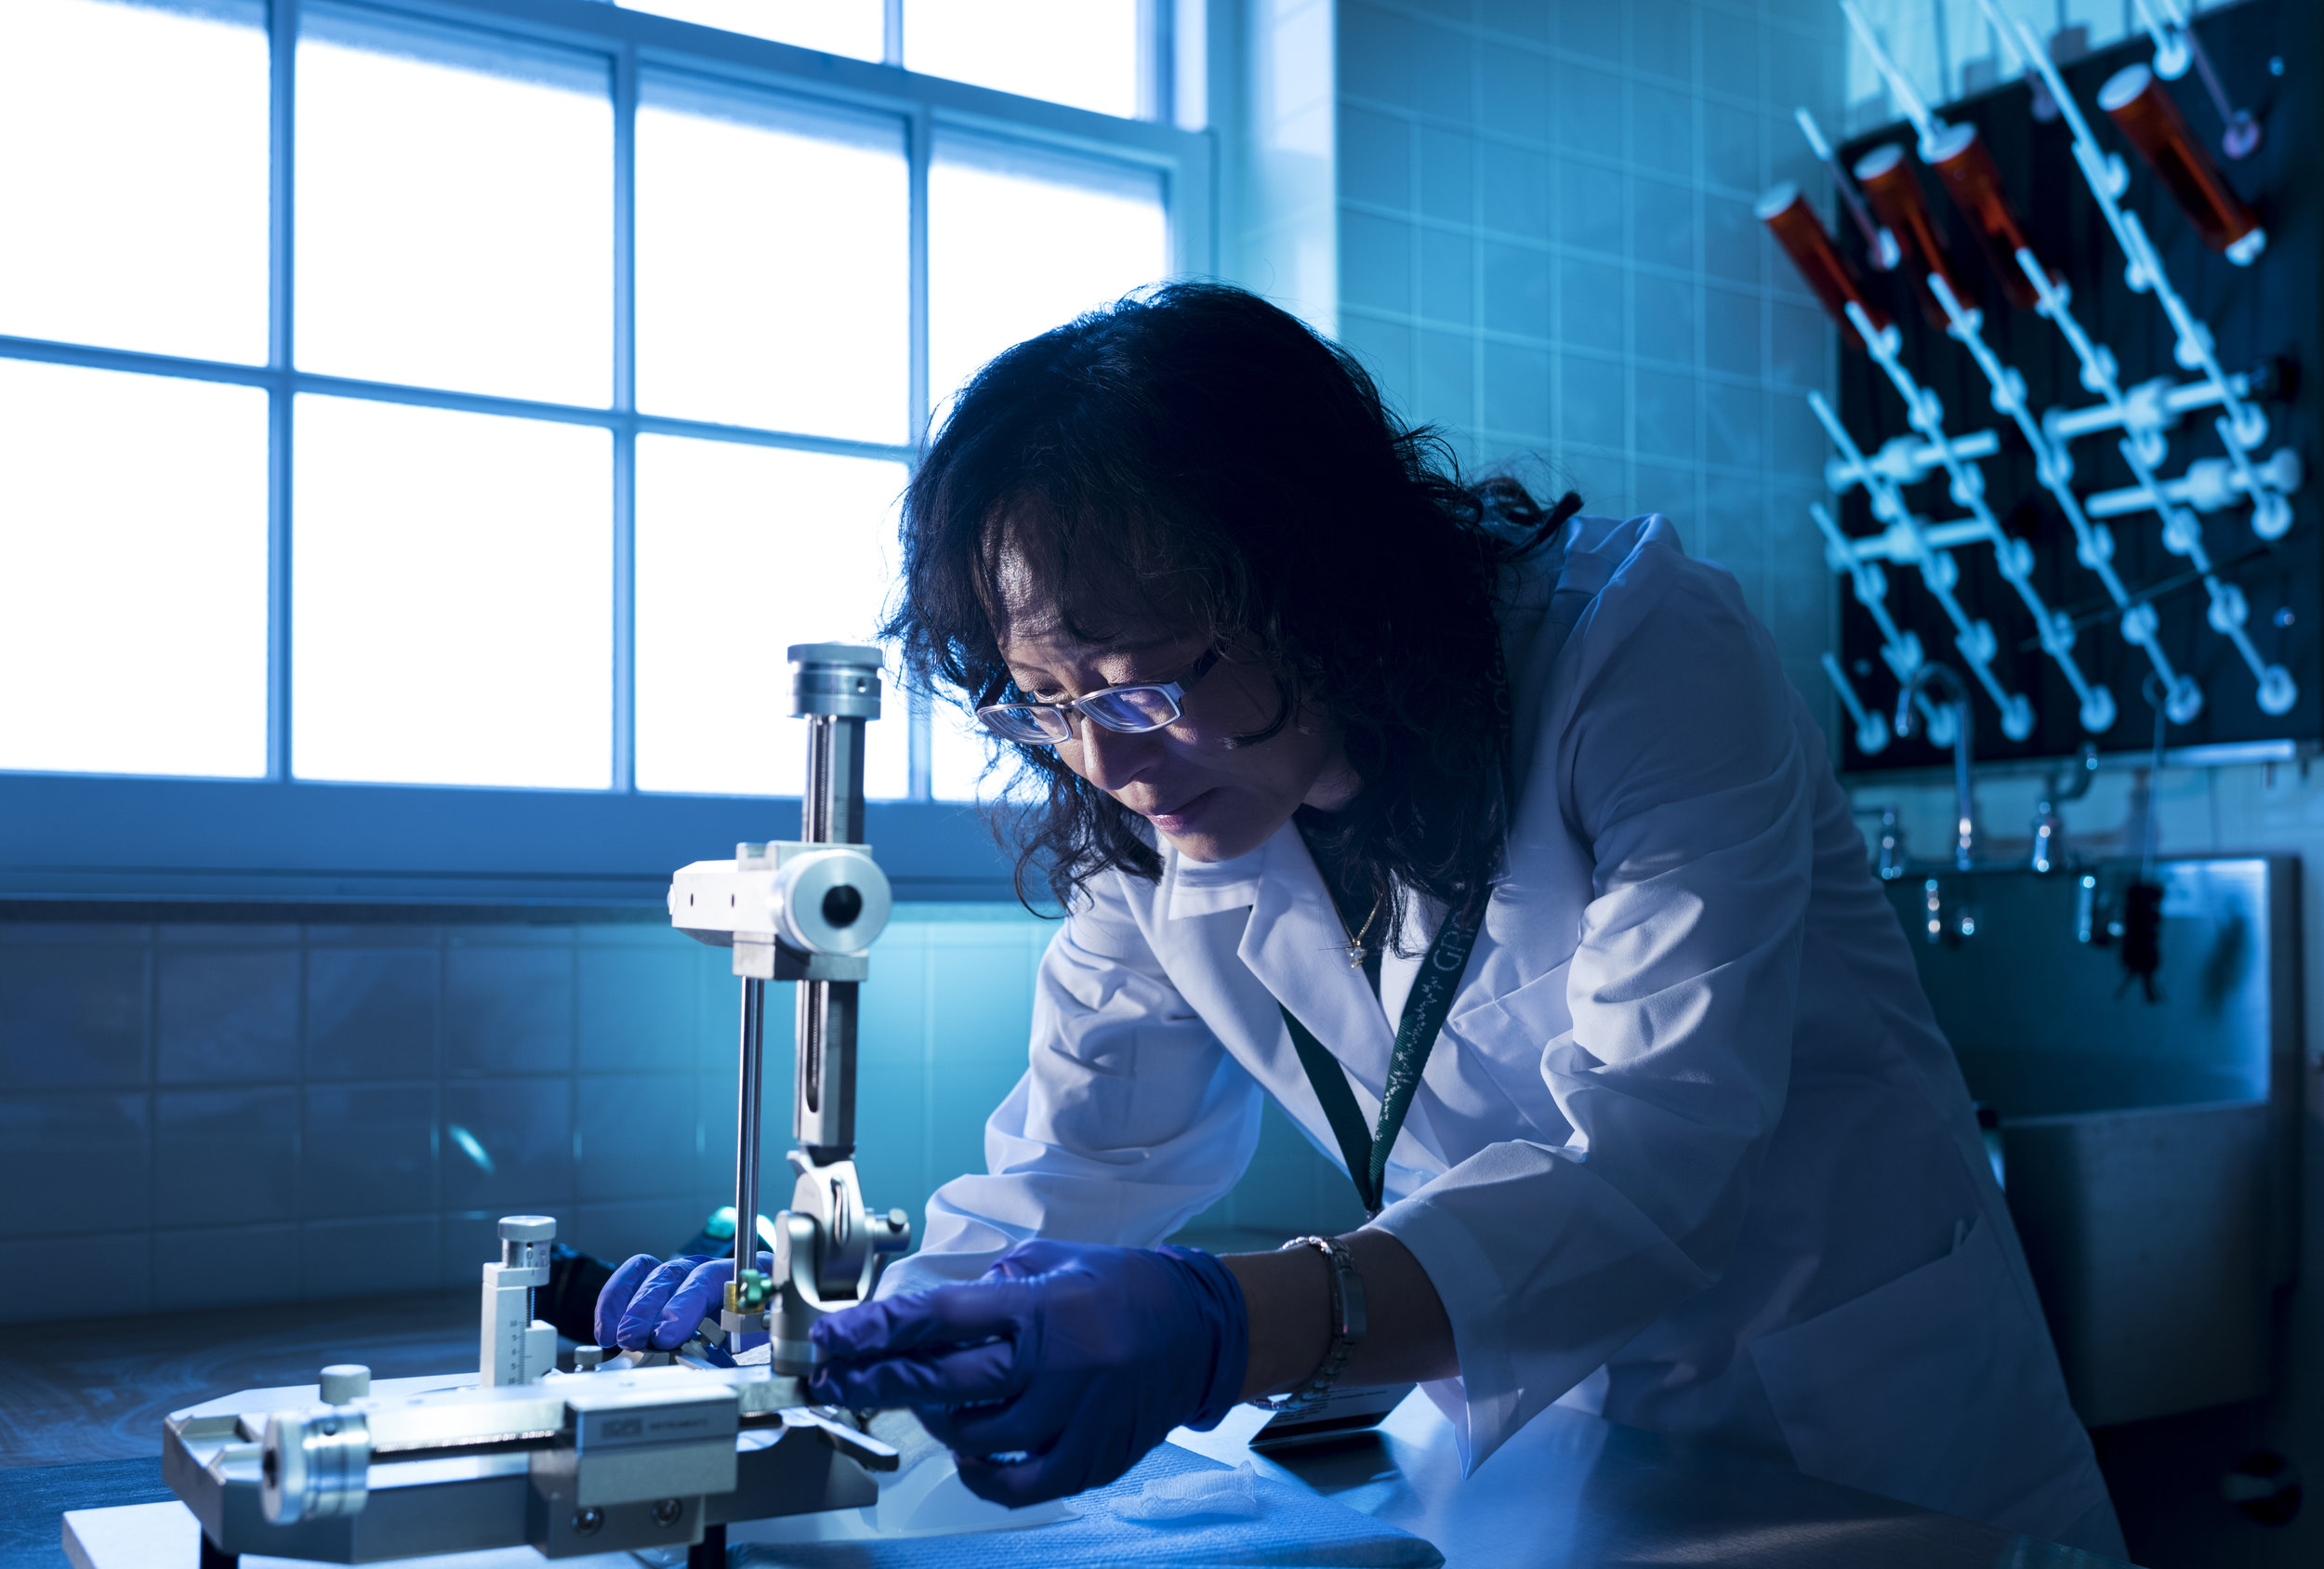 Dr. Chunmin Lo poses in her research laboratory at Ohio University in Athens, Ohio on April 19, 2018.